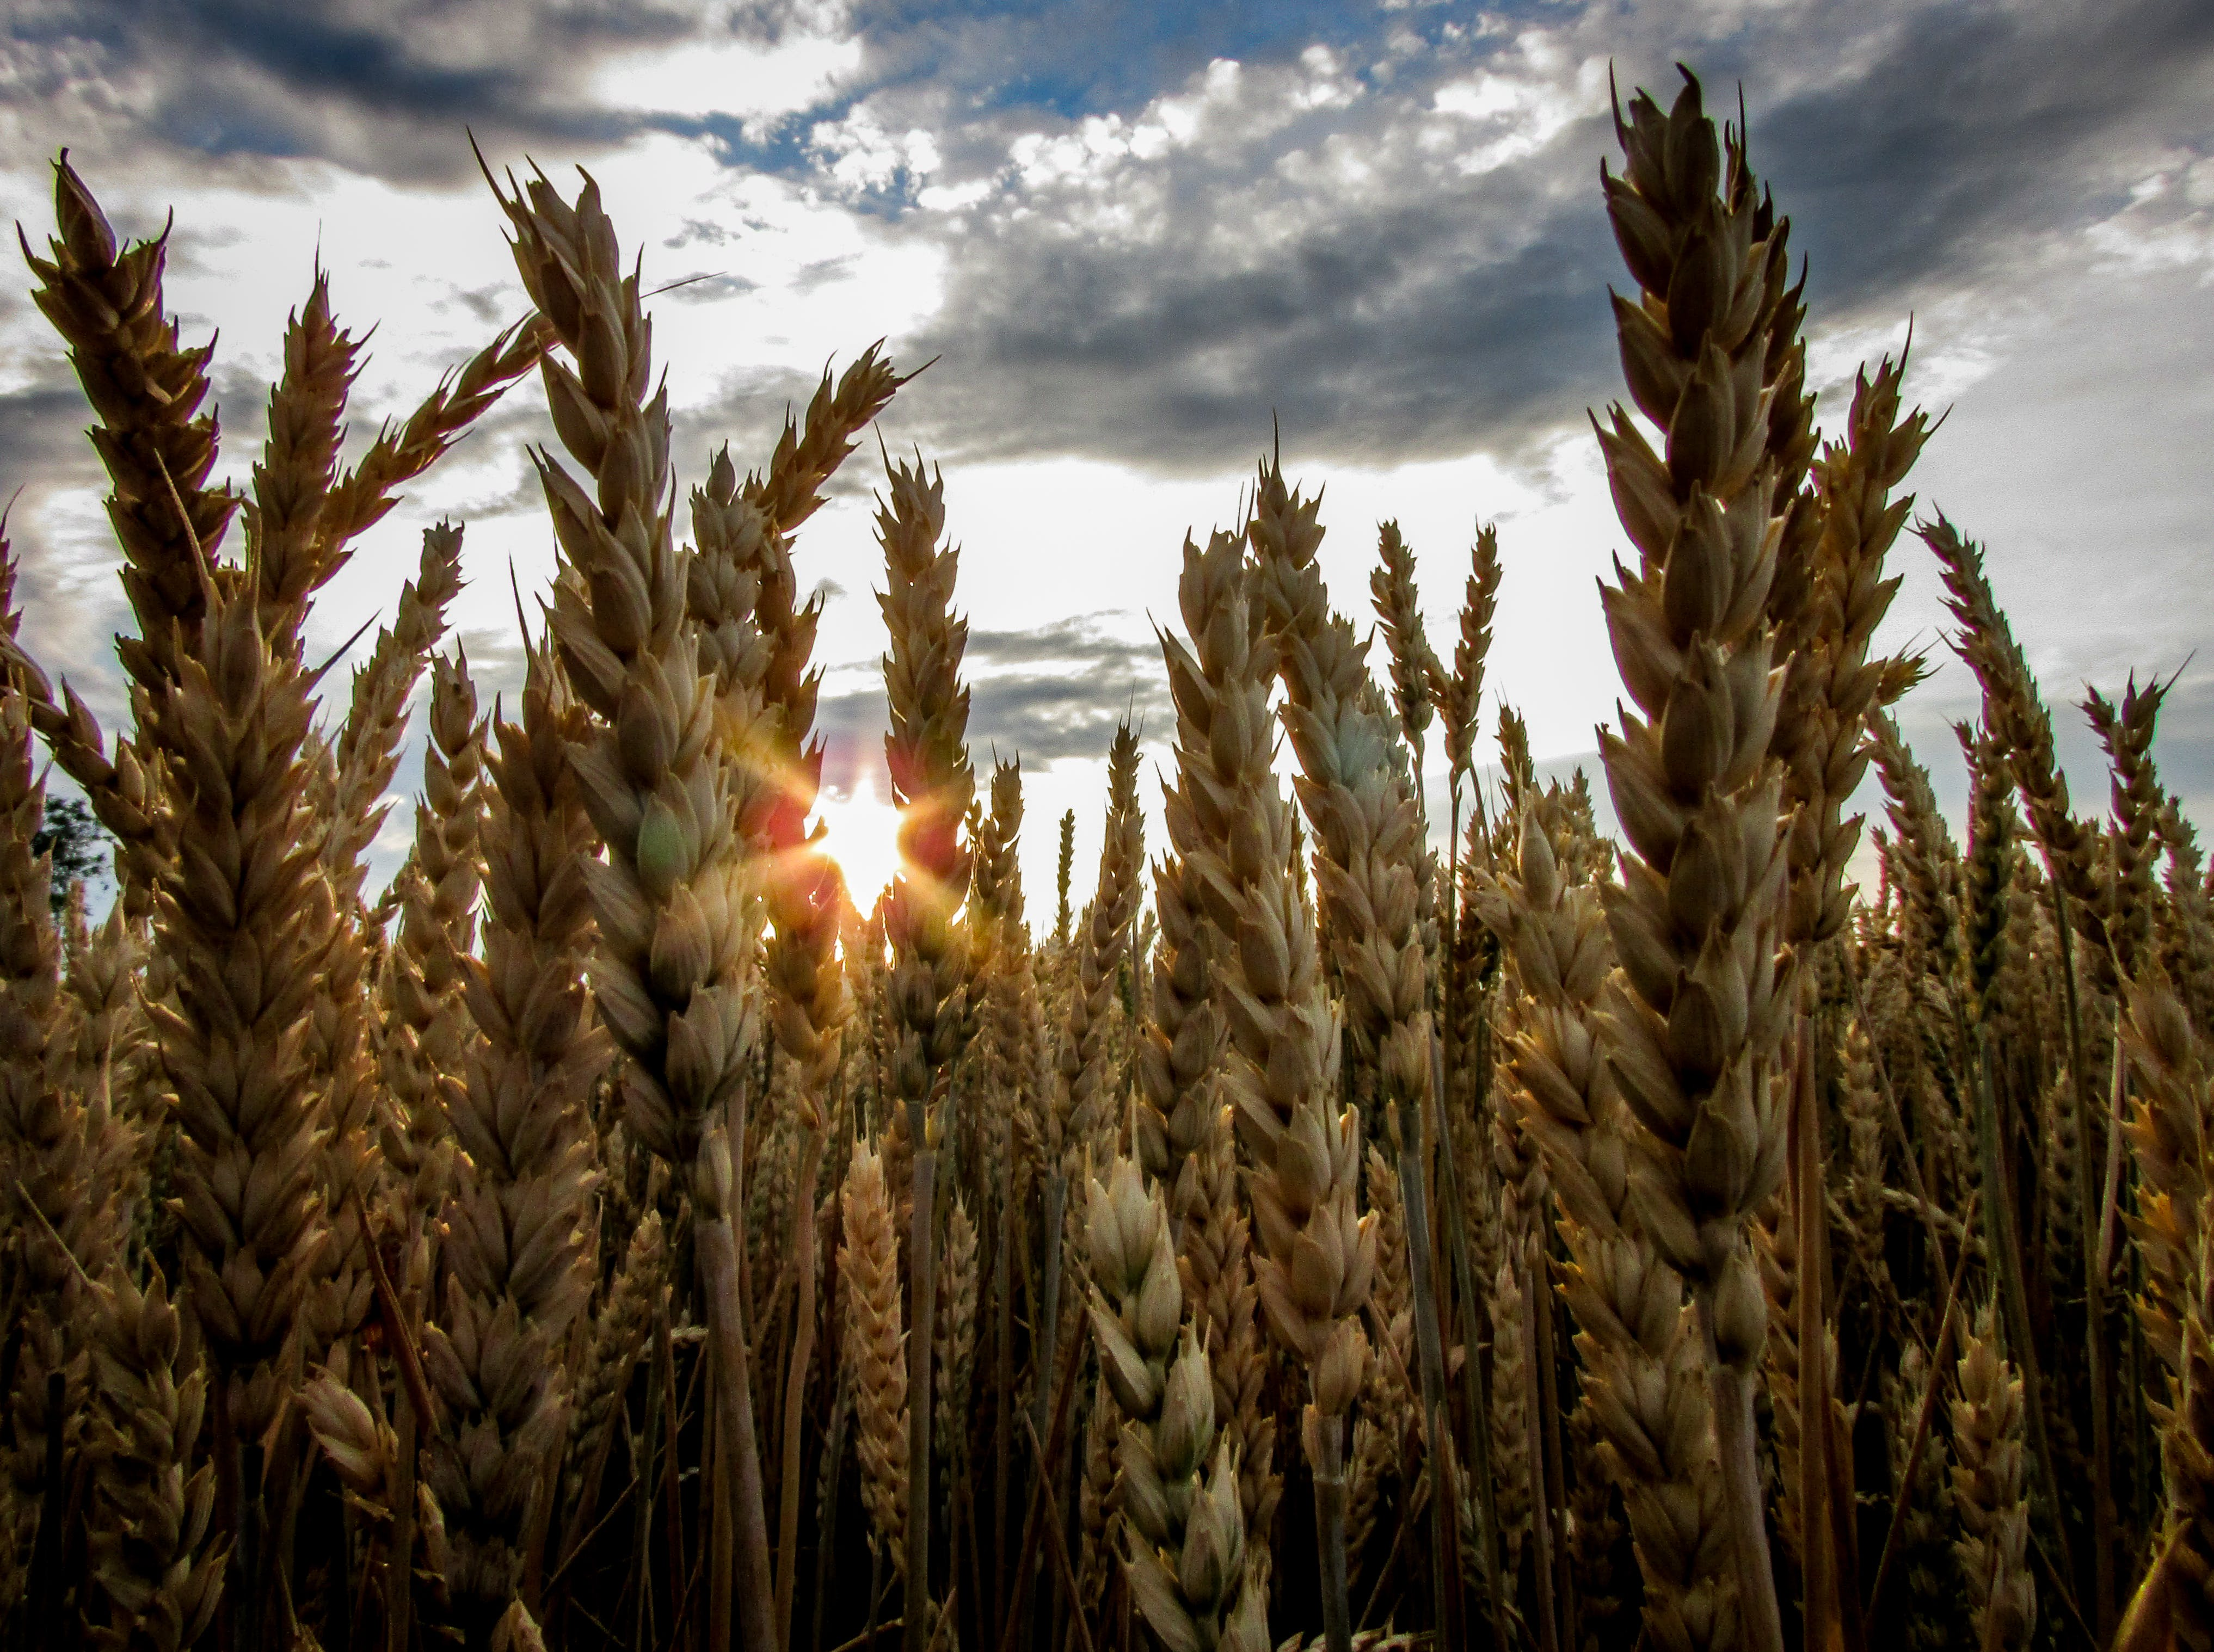 Brown Wheat Field Under Blue Cloudy Sky